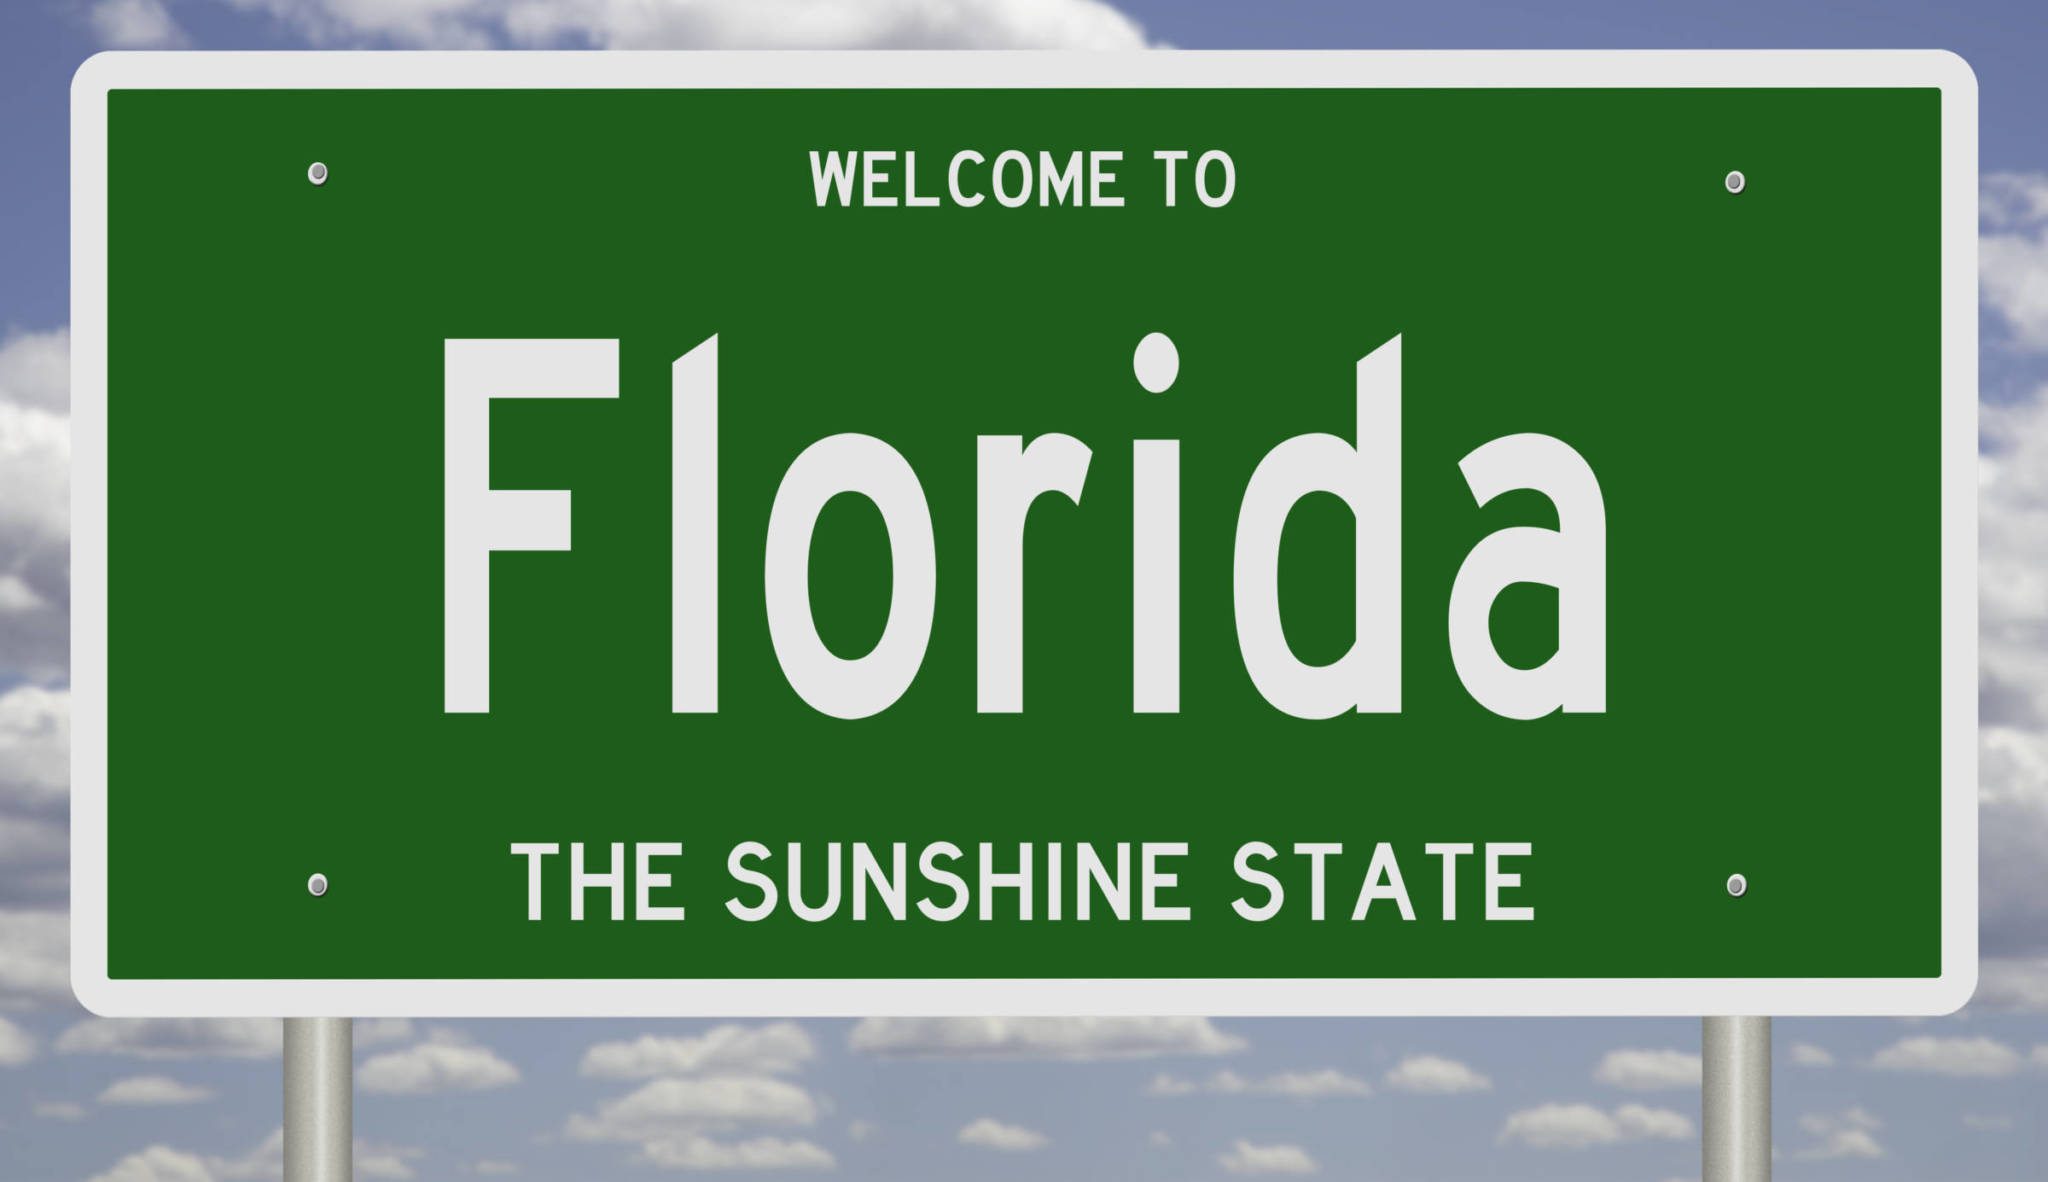 welcome to florida highway sign